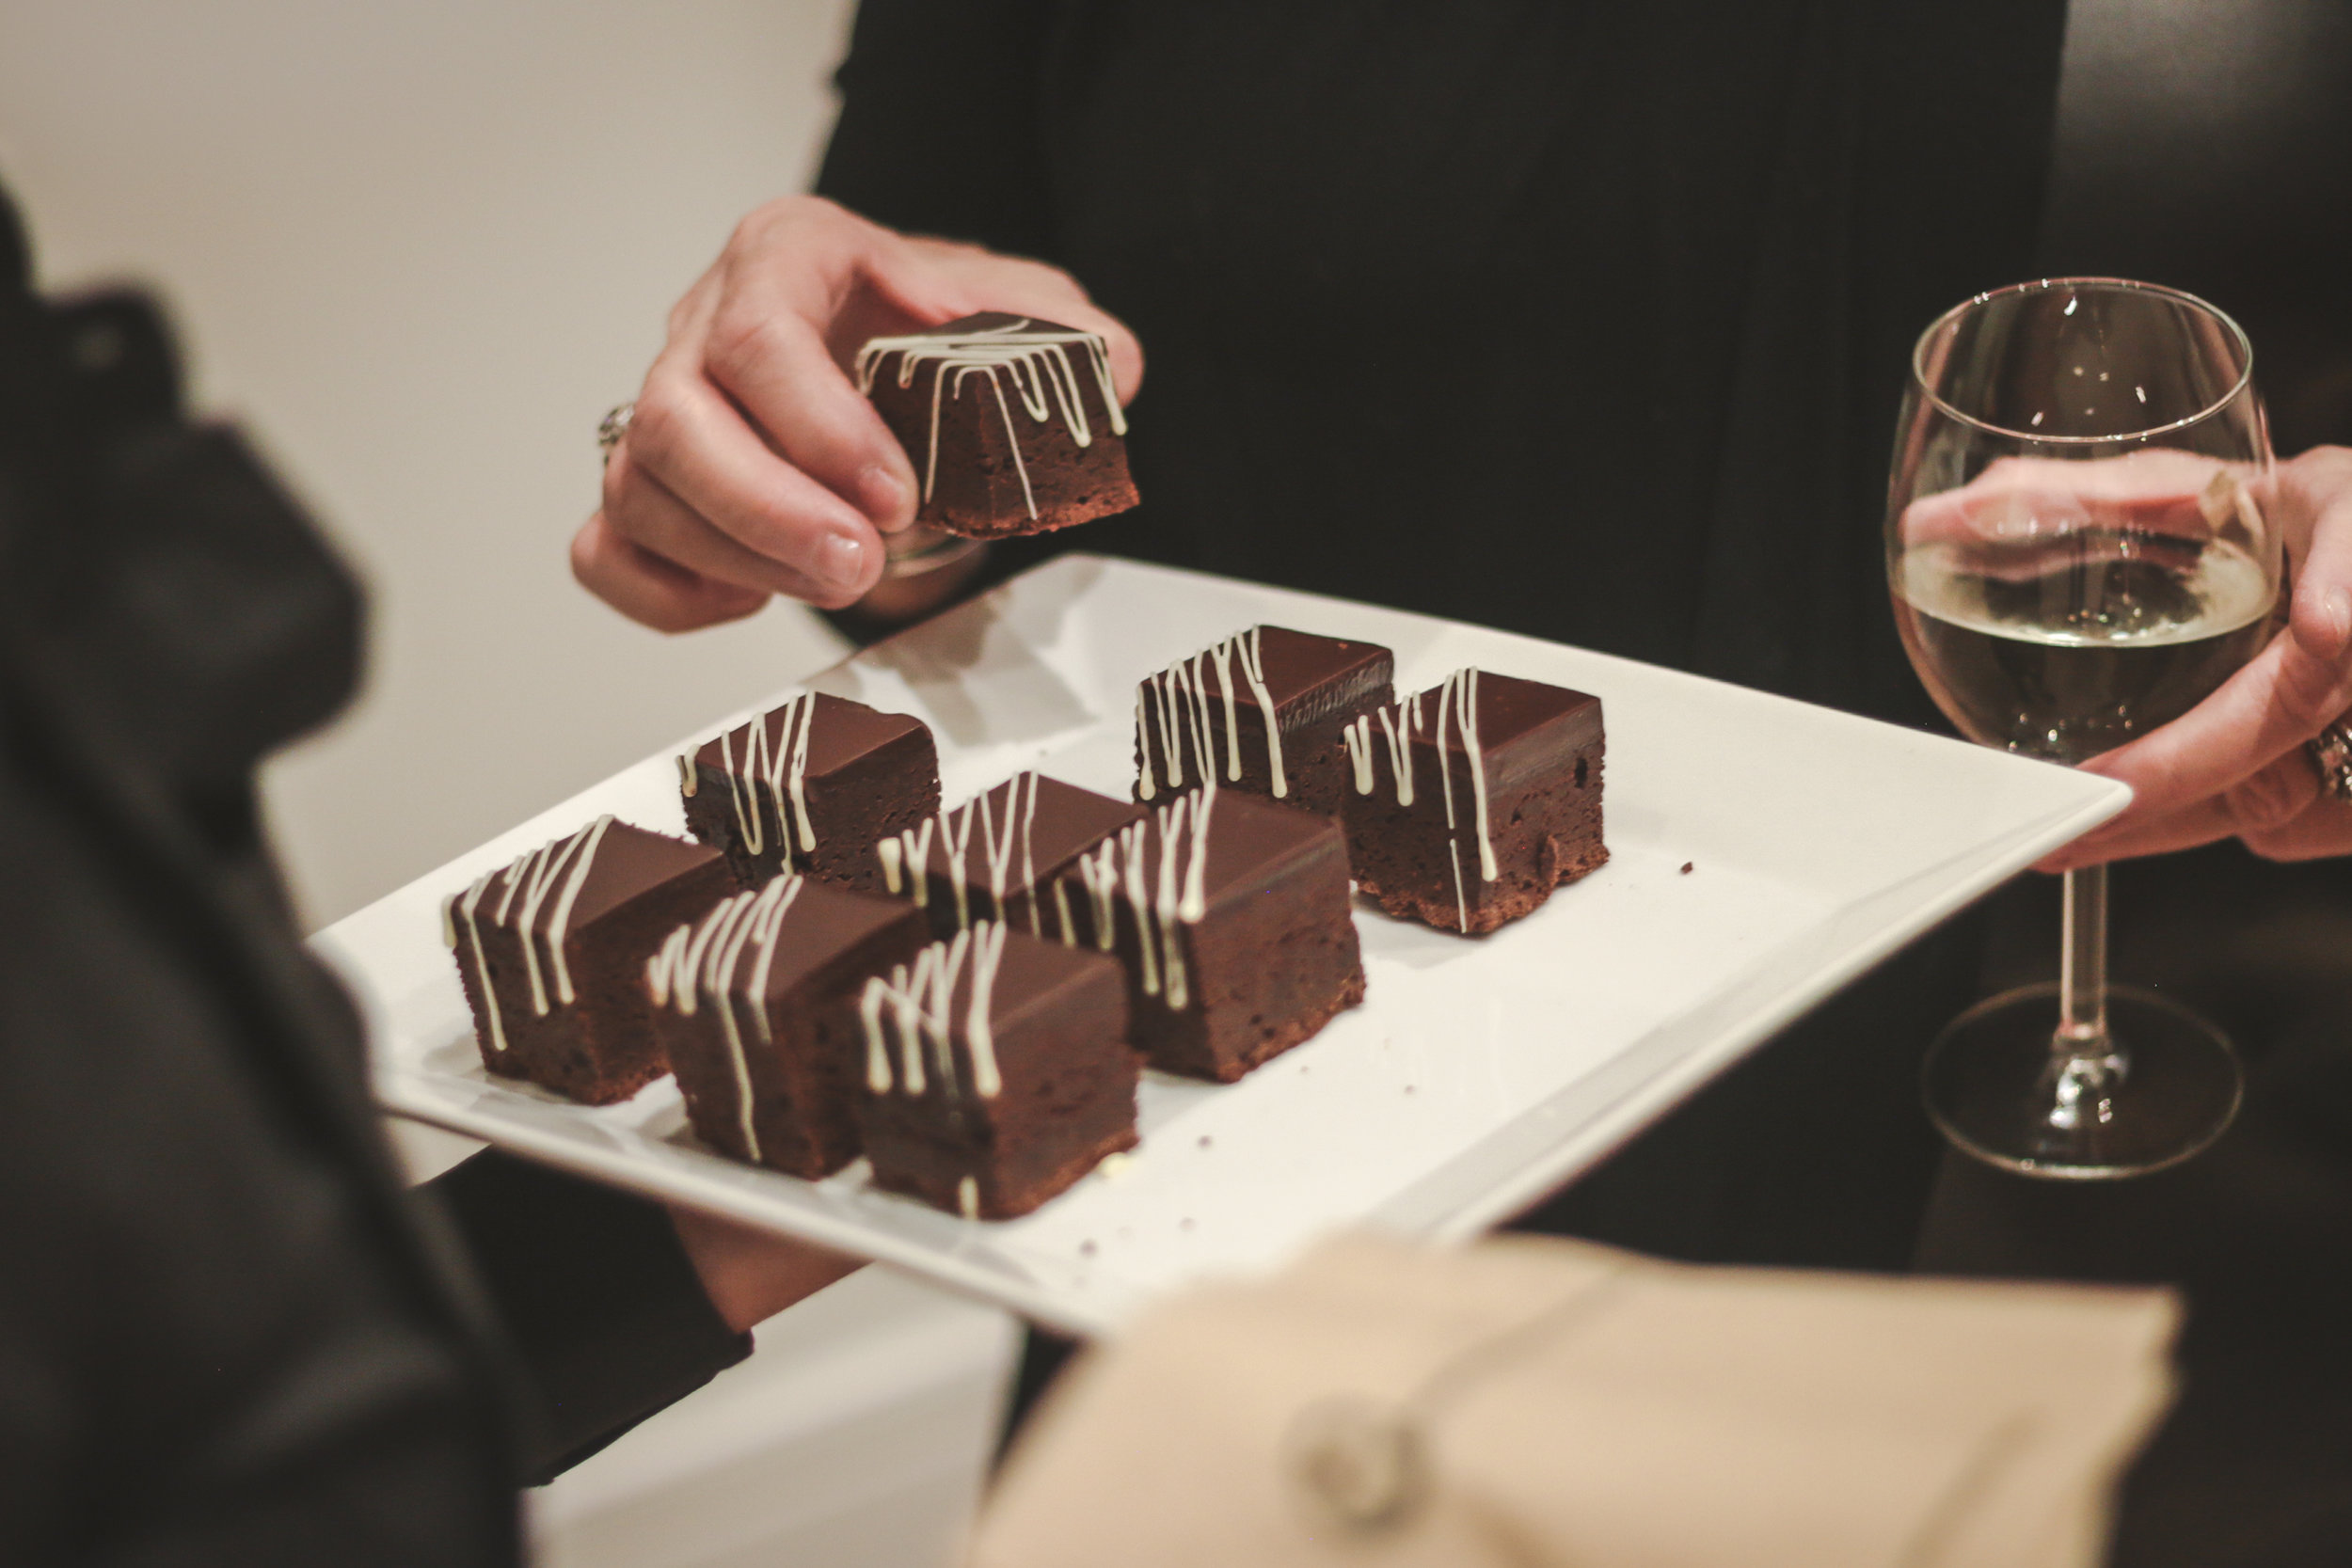 Copy of PAVIA's dark chocolate brownie's served at a catering